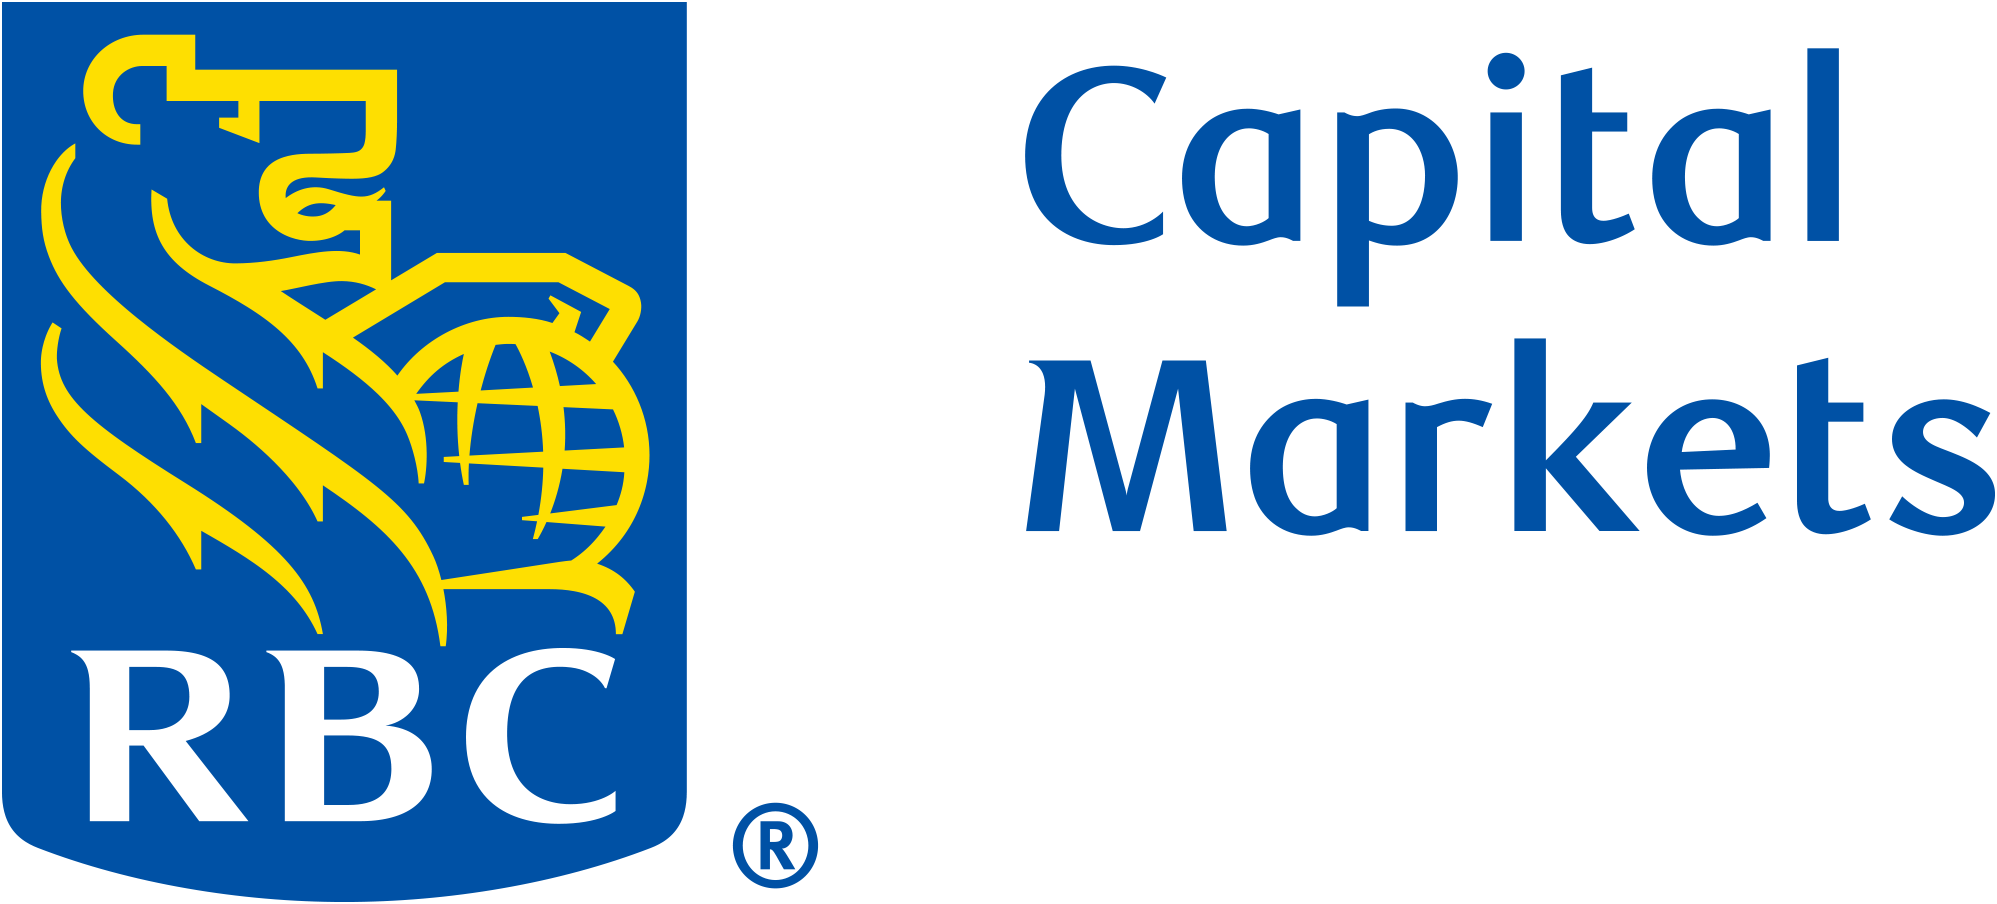 RBC Capital Markets, LLC